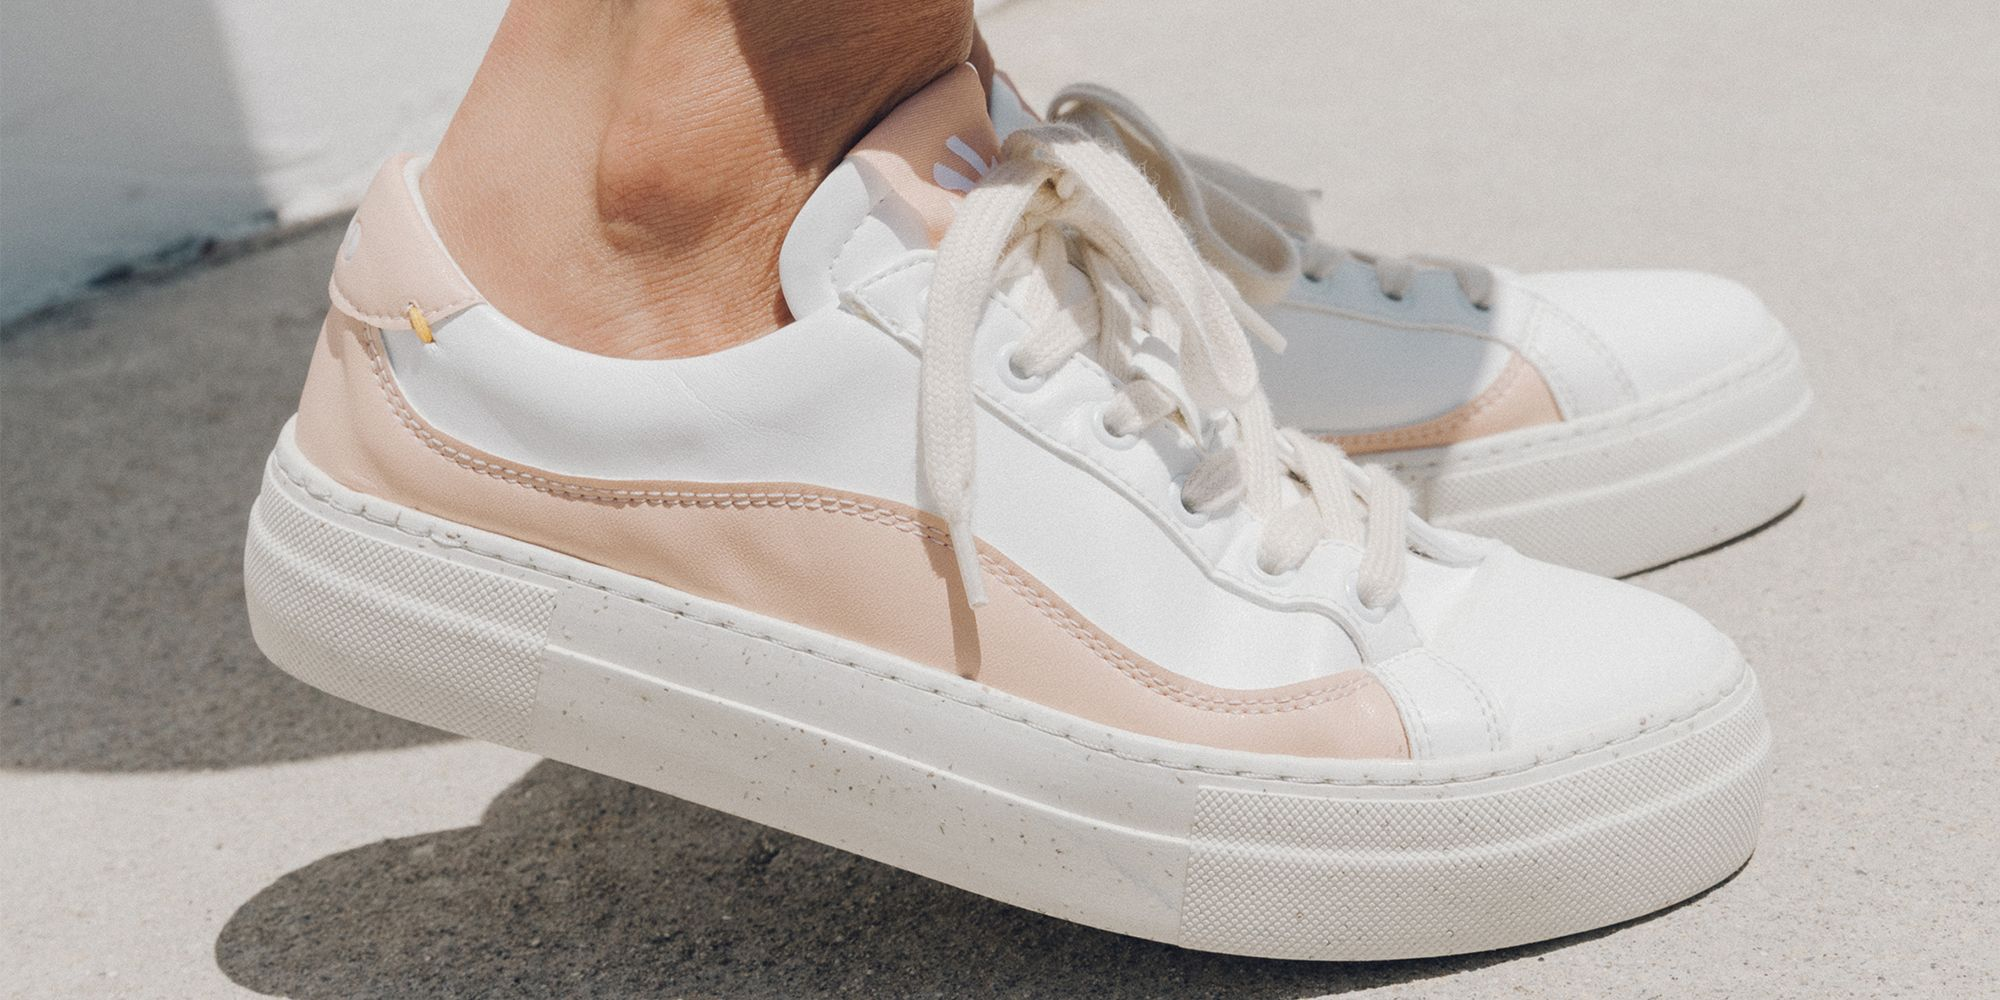 Soludos Has a New Vegan Leather Sneaker